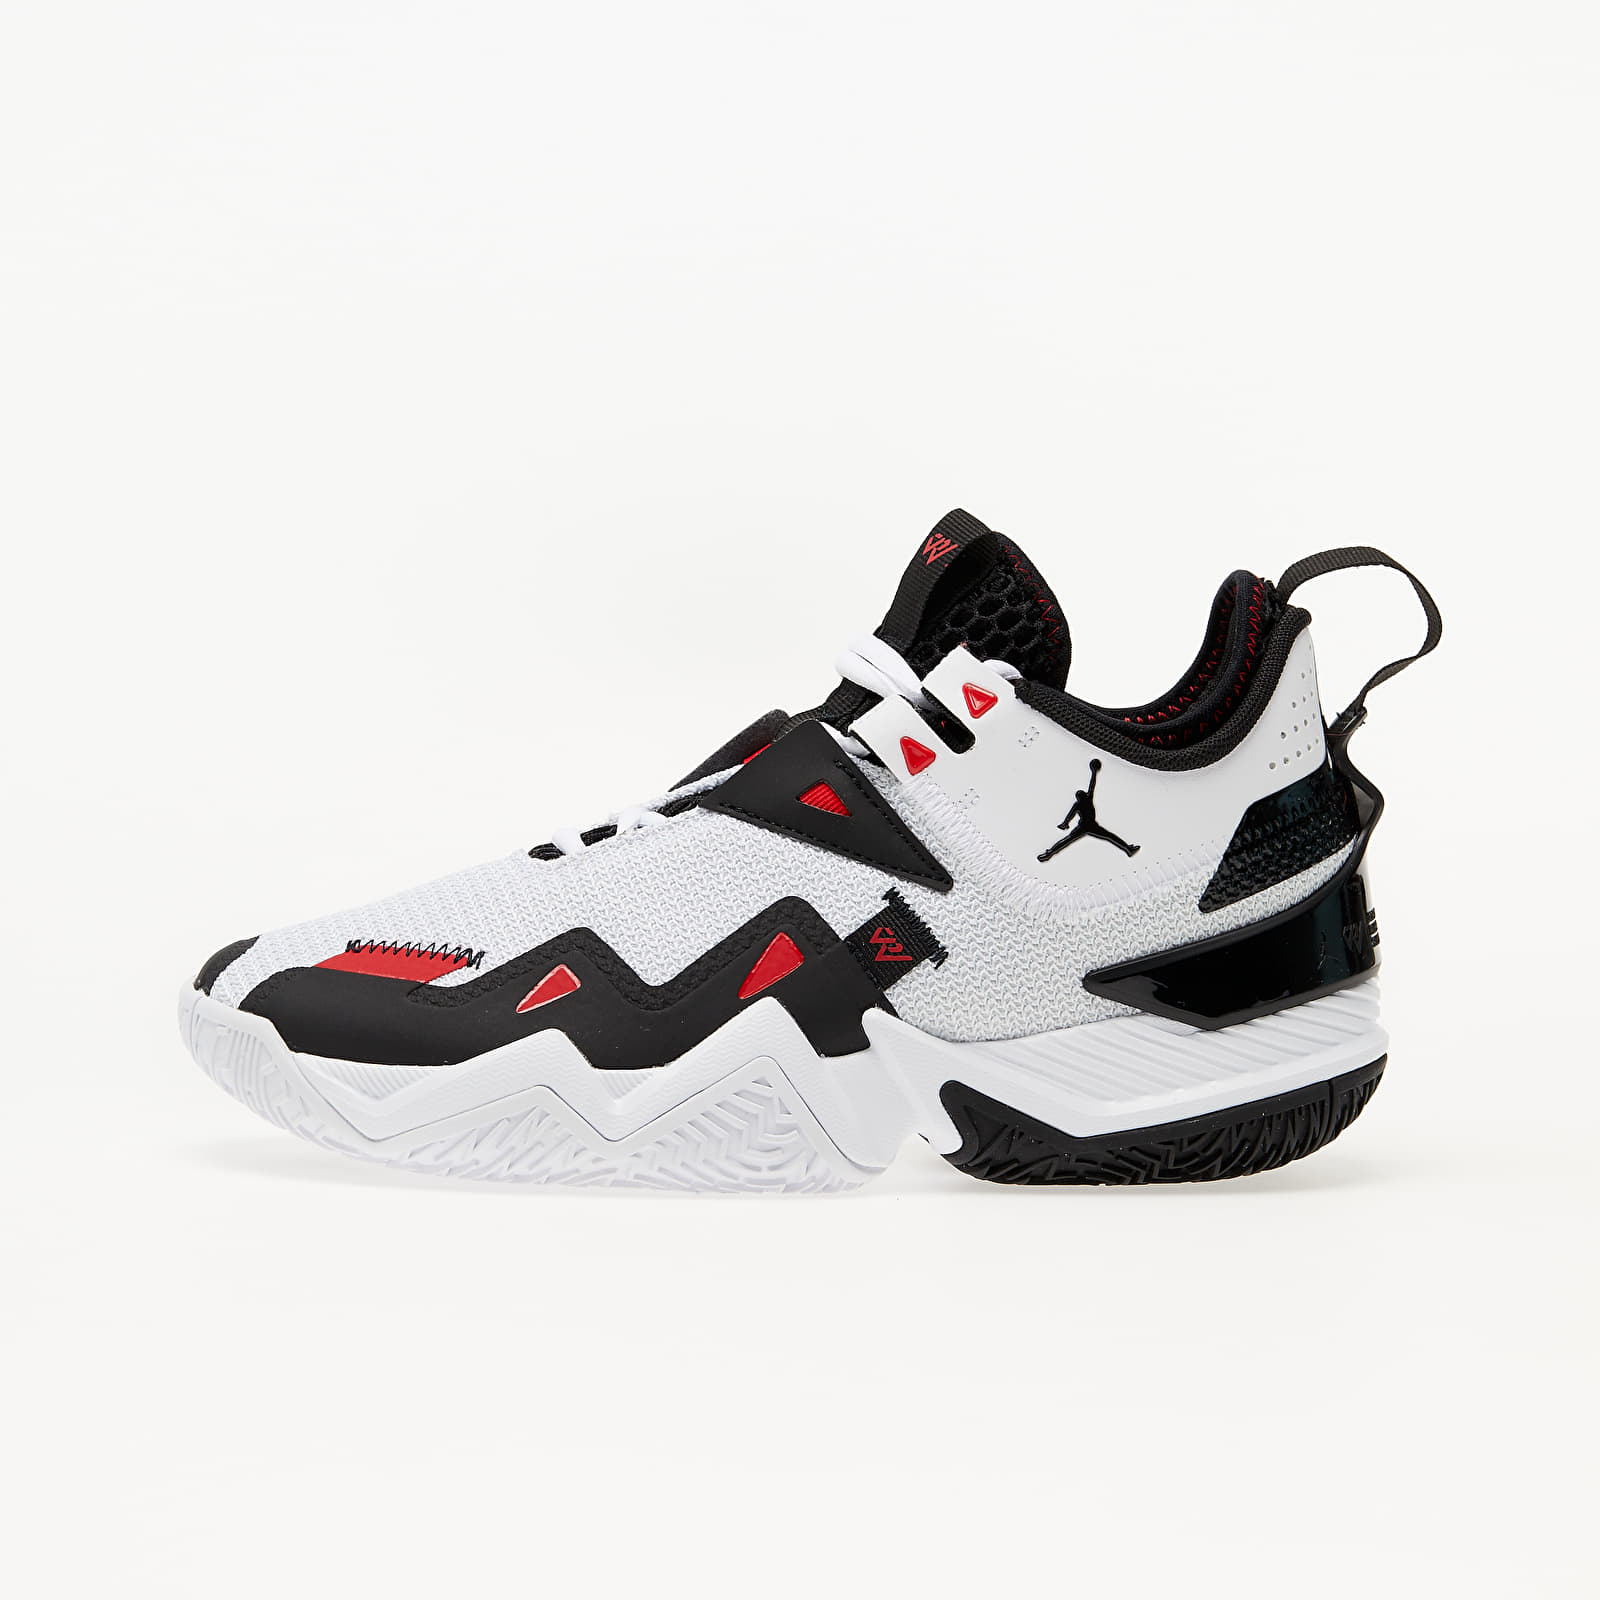 Men's shoes Jordan Westbrook One Take White/ Black-University Red